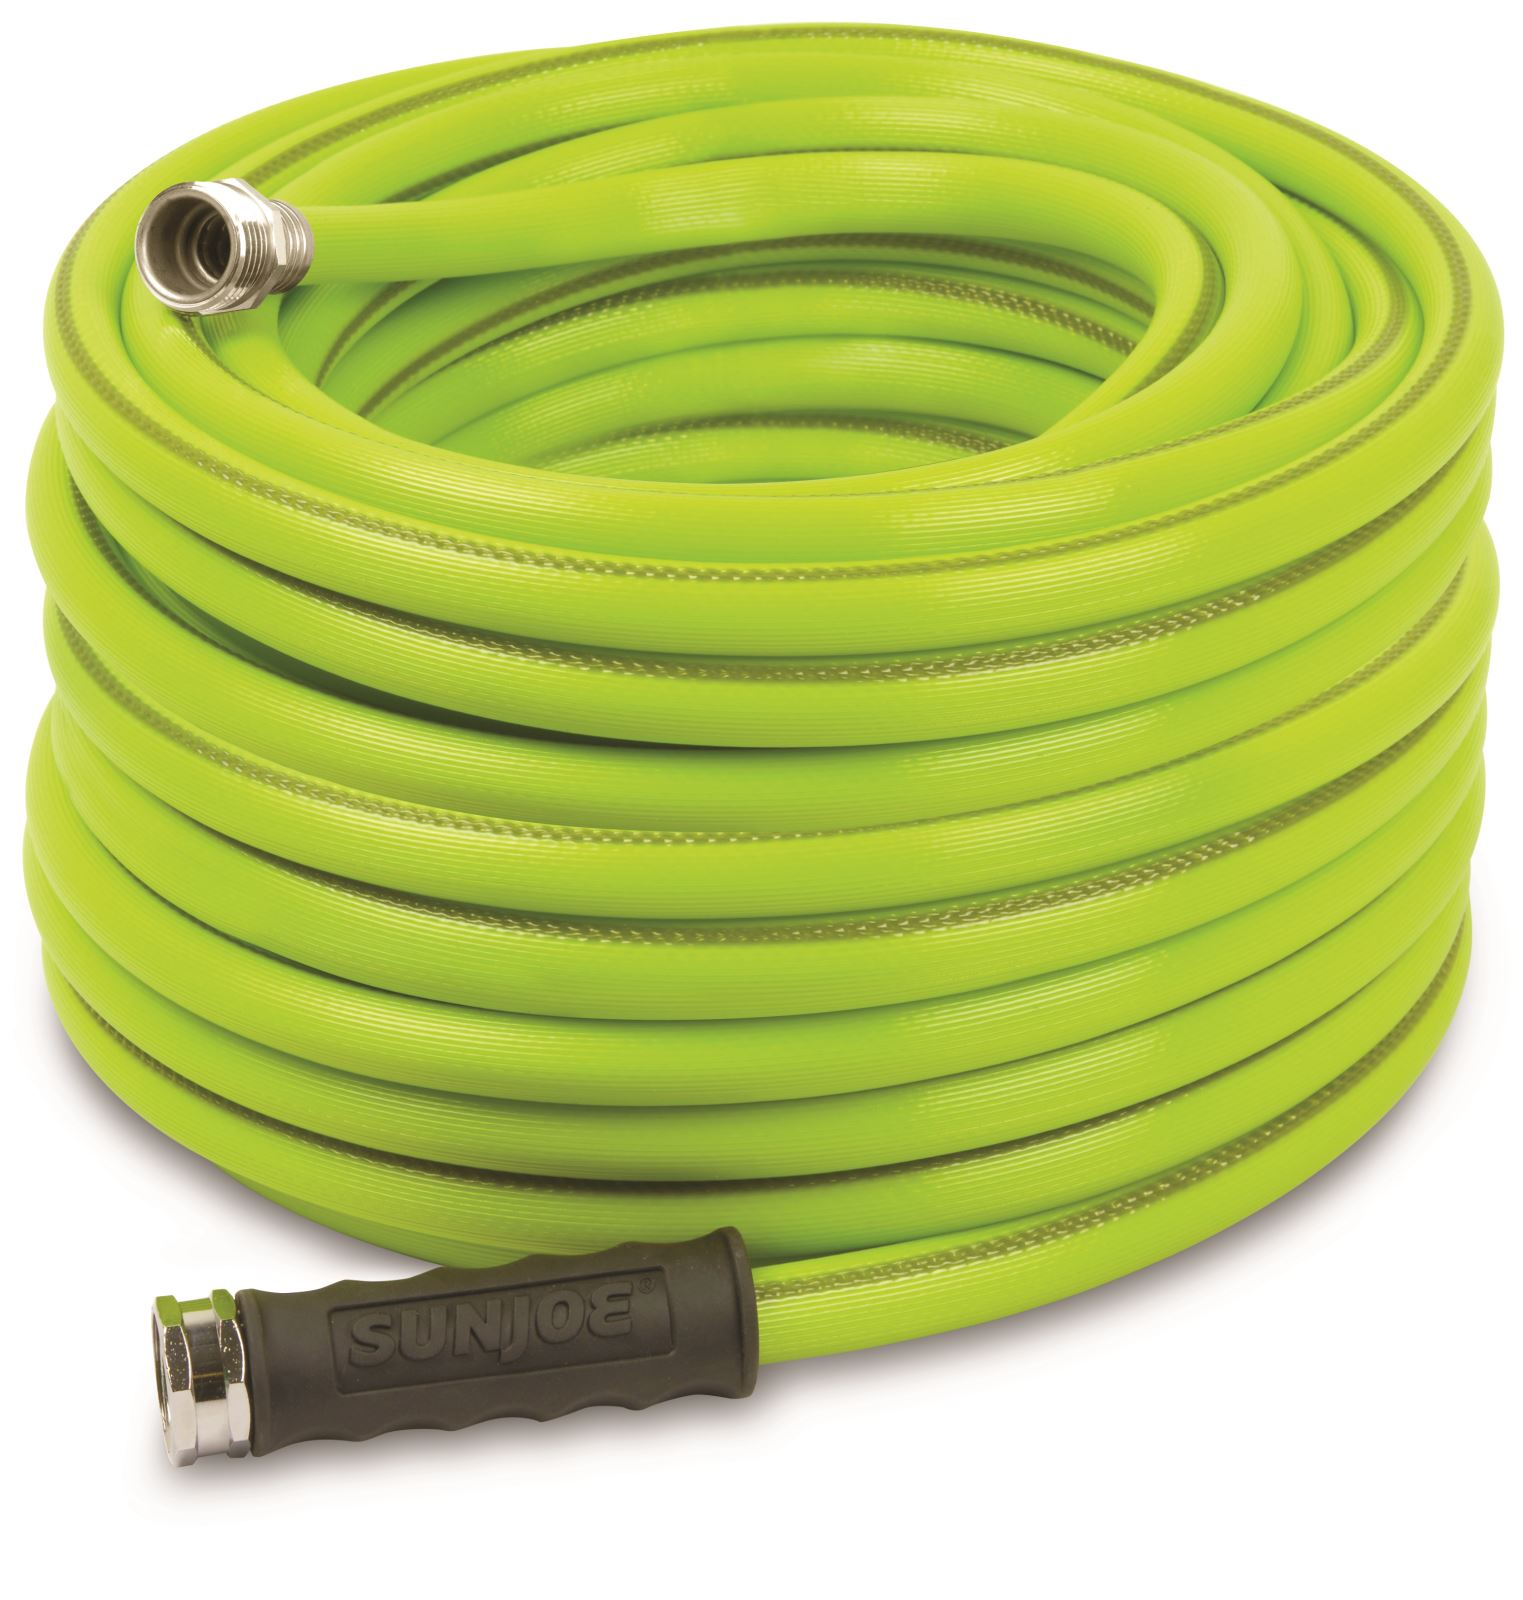 Sun Joe AJH58-100 Heavy-Duty Garden Hose | 100-Foot | 5/8-Inch Flow